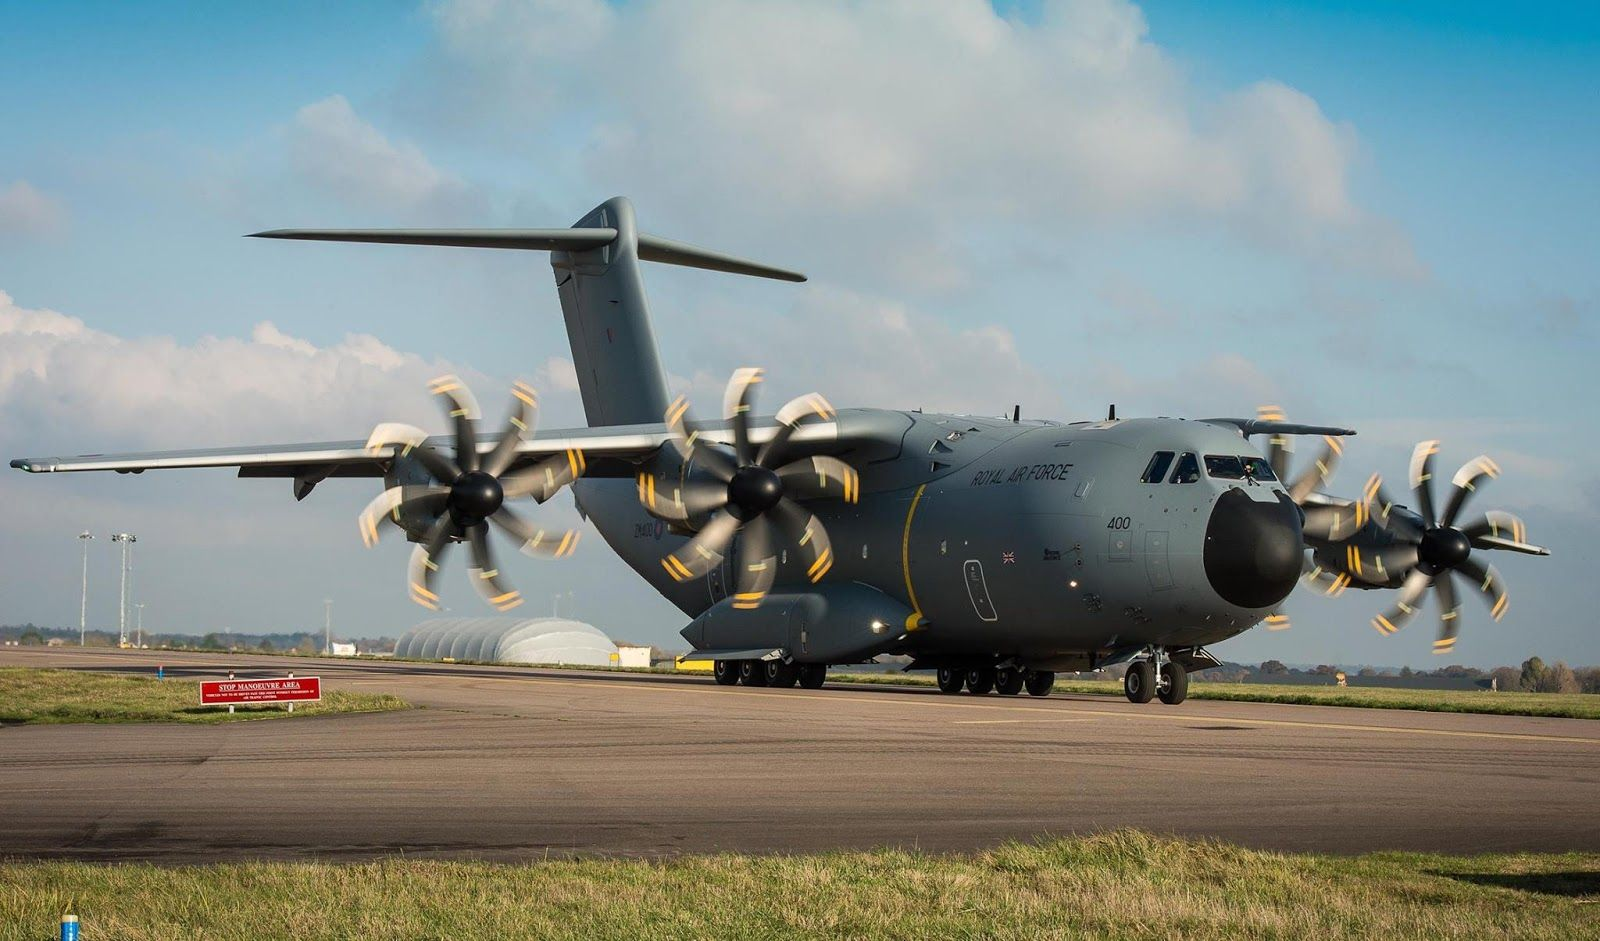 Latest A400m Transport Aircraft Is Delivered To The Royal Air Force 64821